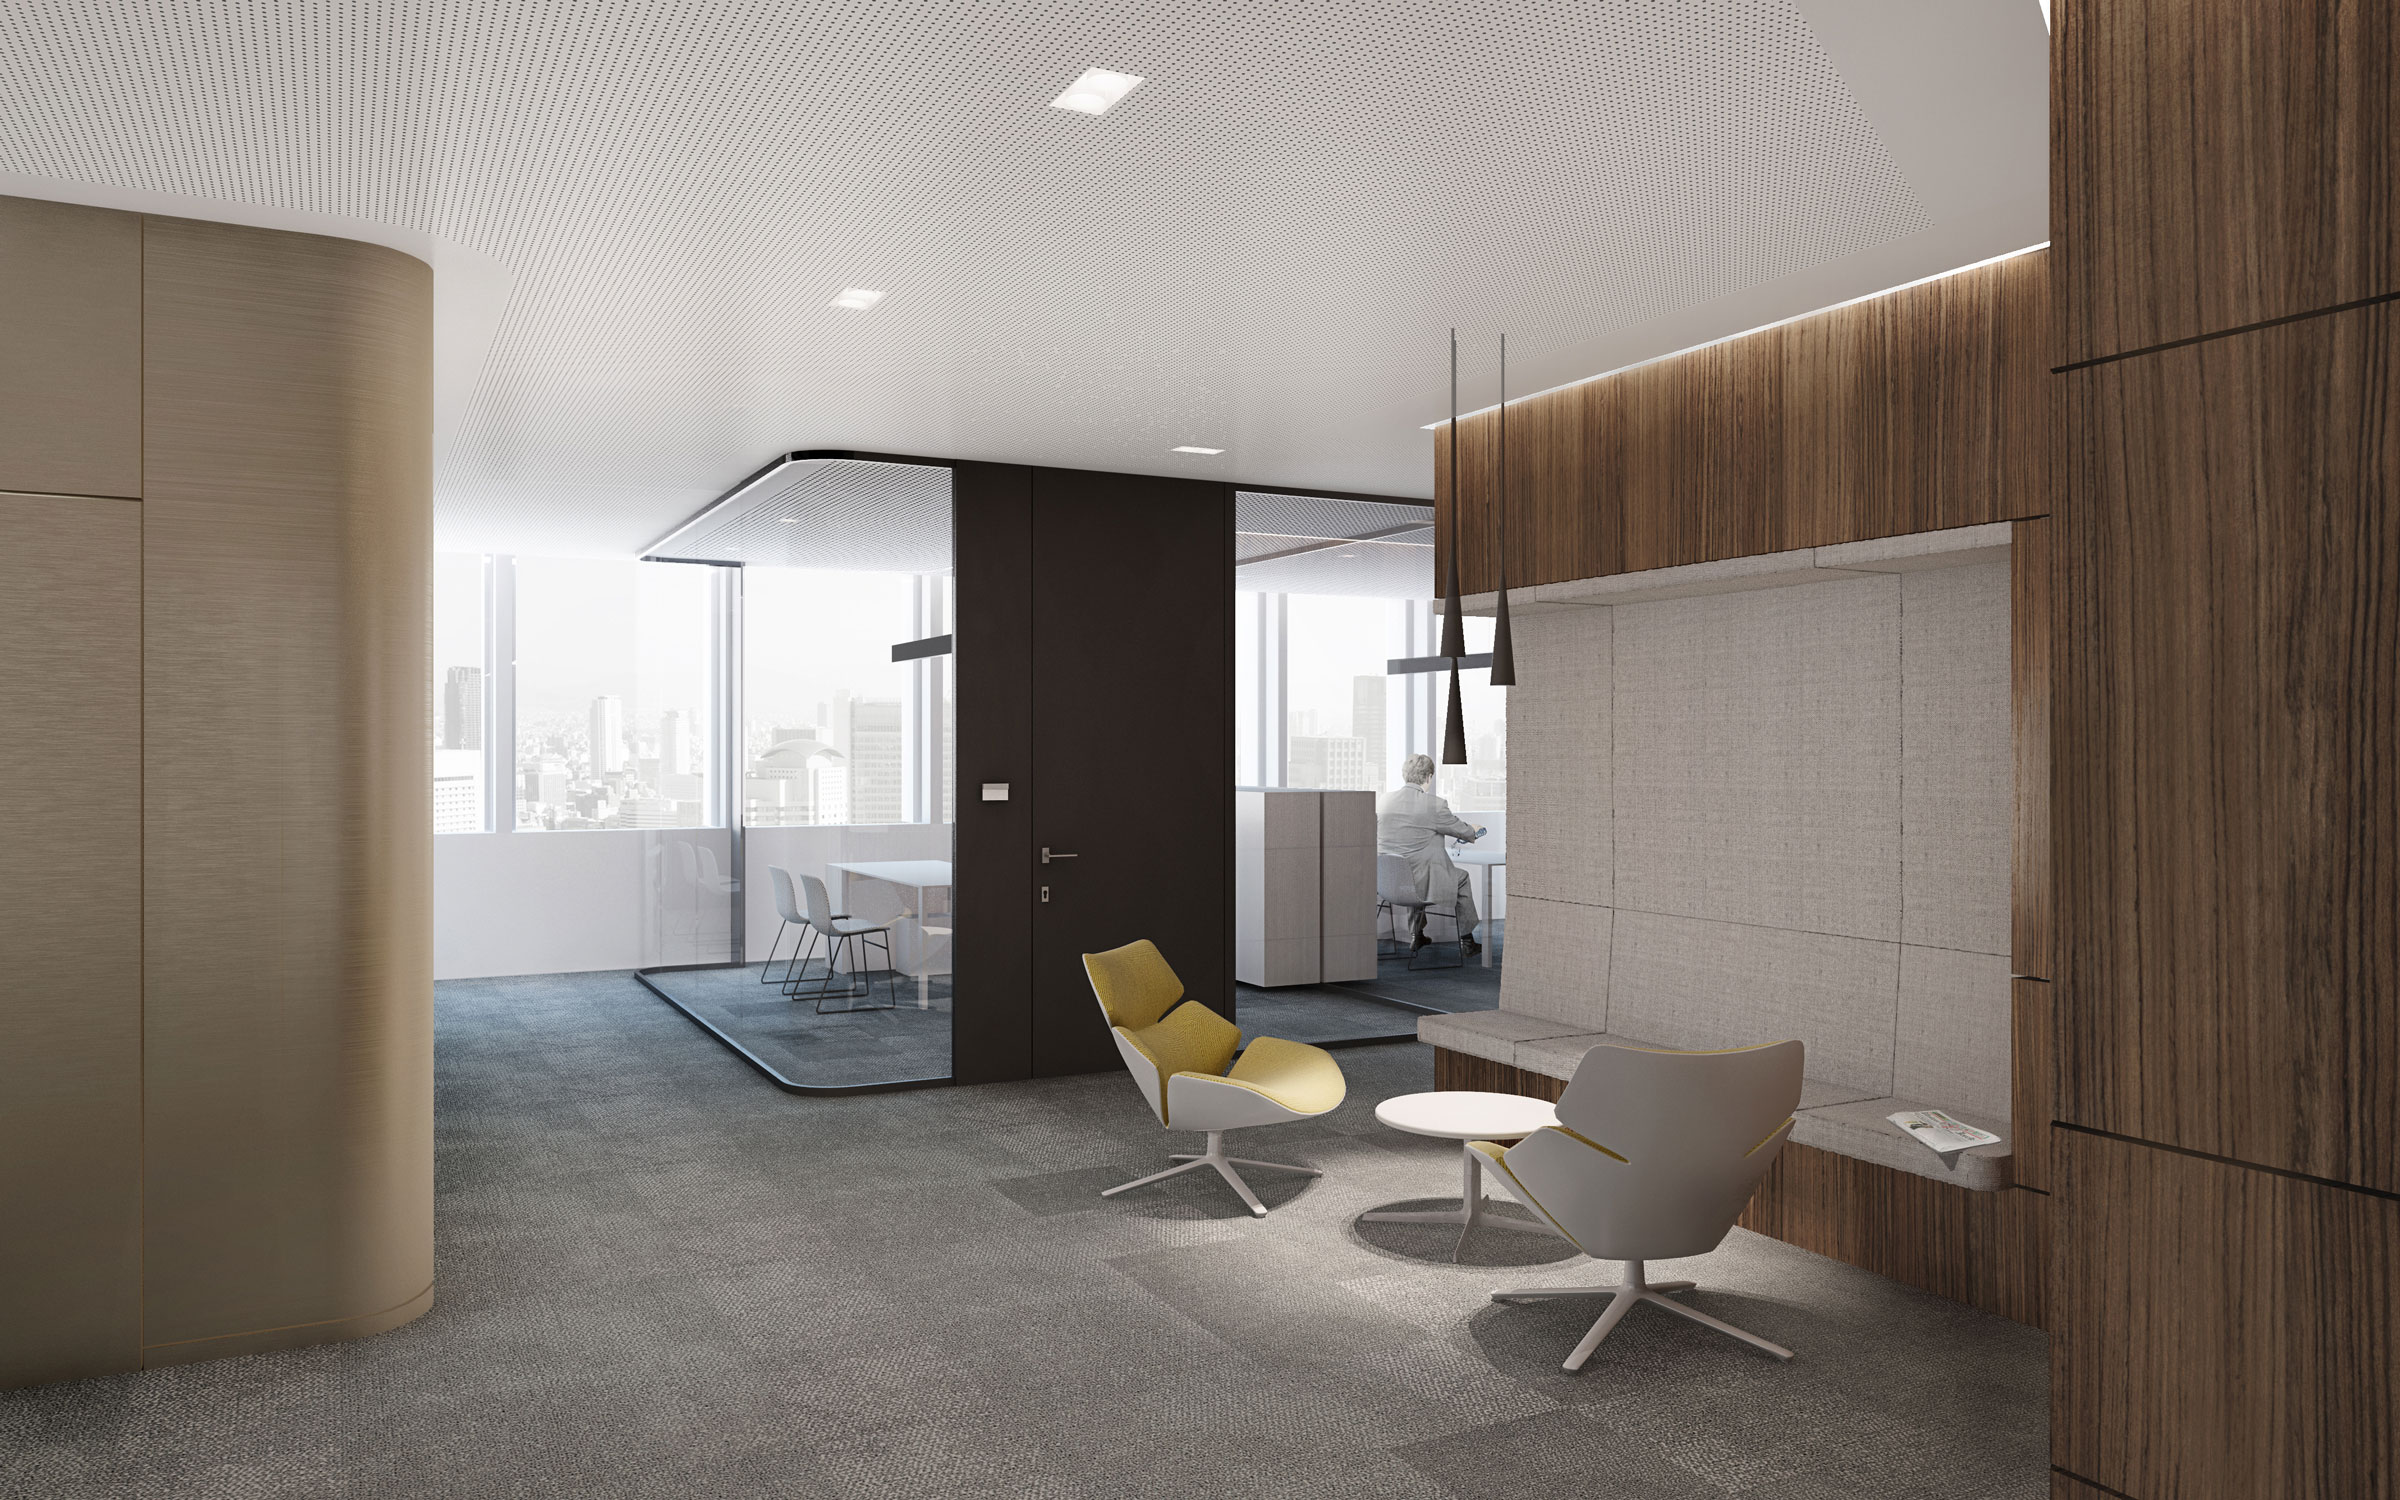 Constructional corporate design German diplomatic representation, waiting area